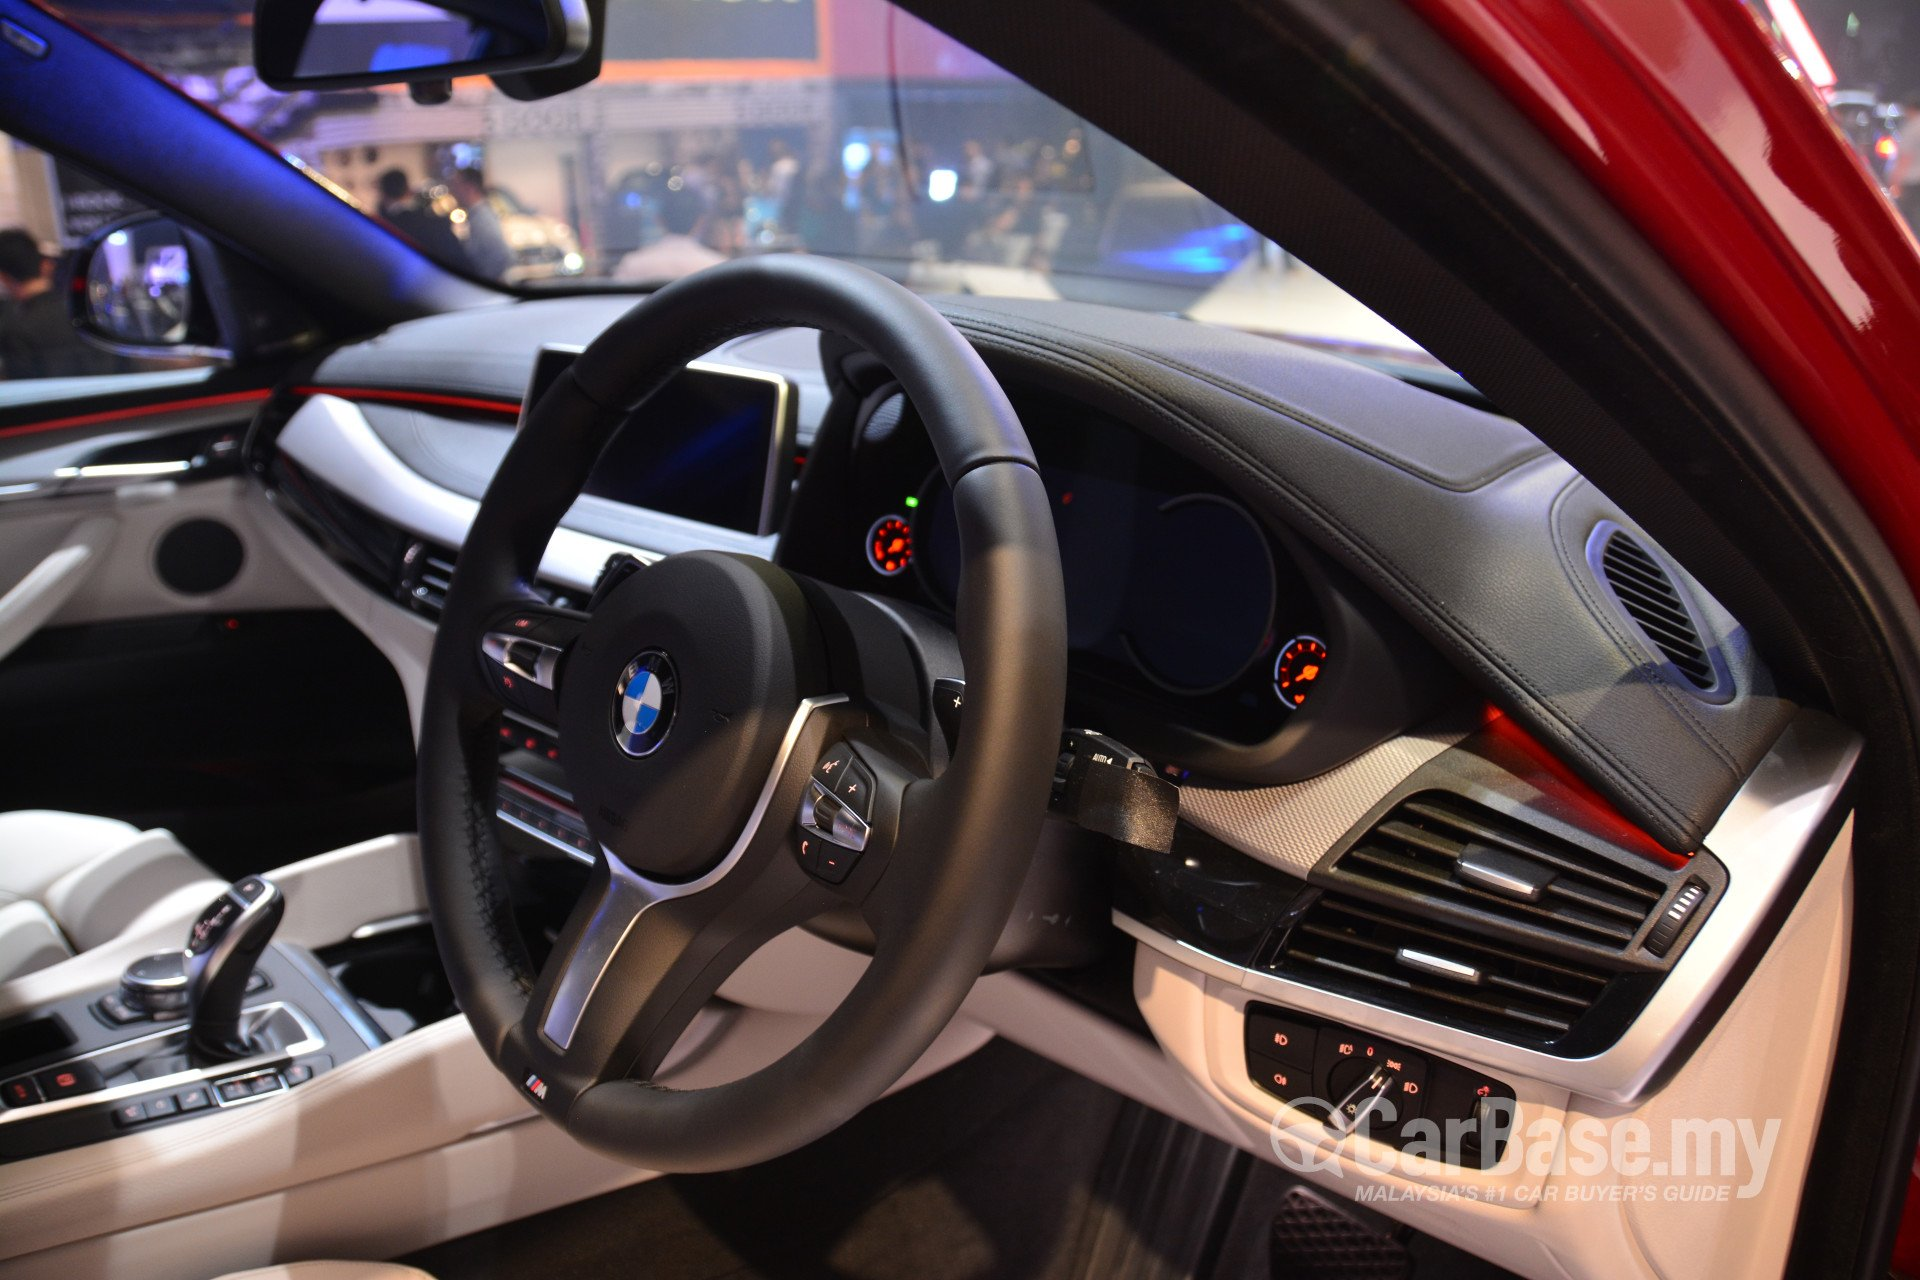 Bmw X6 F16 2015 Interior Image 20867 In Malaysia Reviews Specs